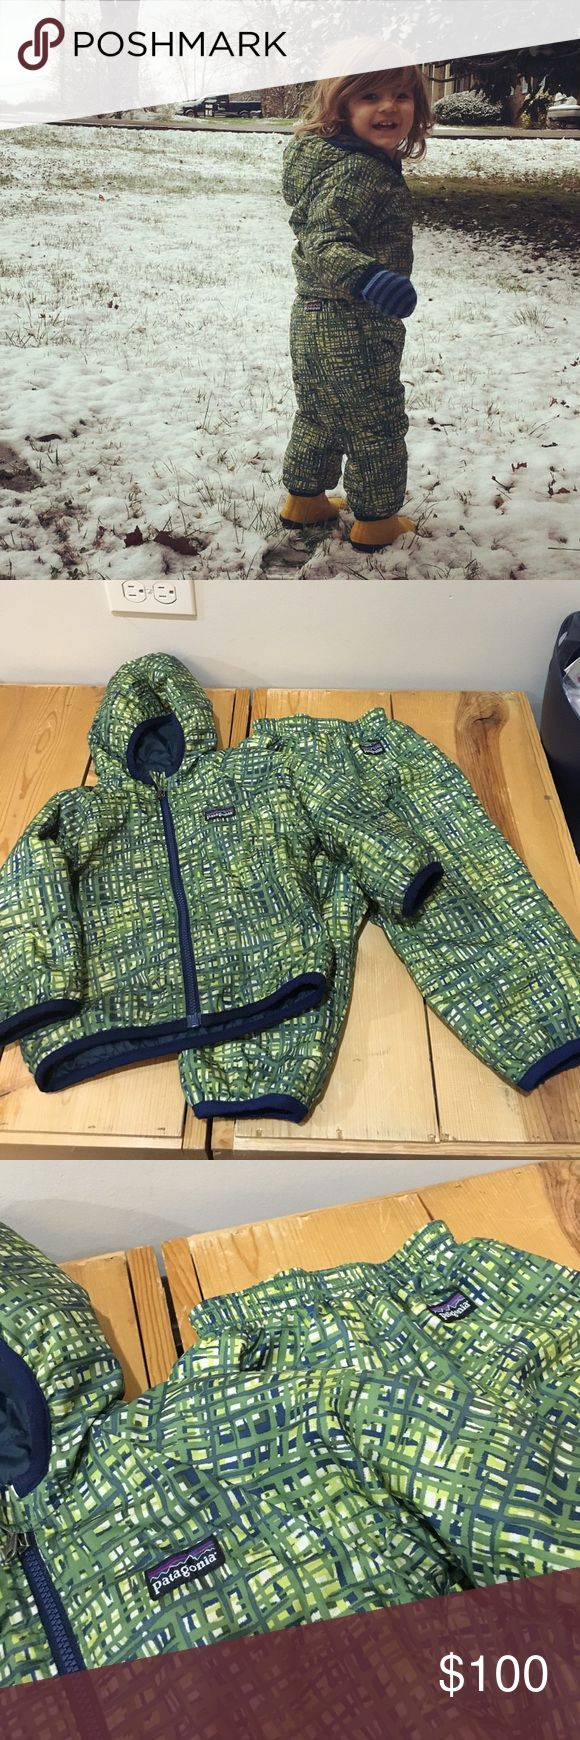 Toddler puff ball Patagonia set 18-24 months No size tag gently used and freshly washed. Tons of life left. Reversible. Green and dark blueish grey. See measurements. Snow pants and jacket. Patagonia Jackets & Coats